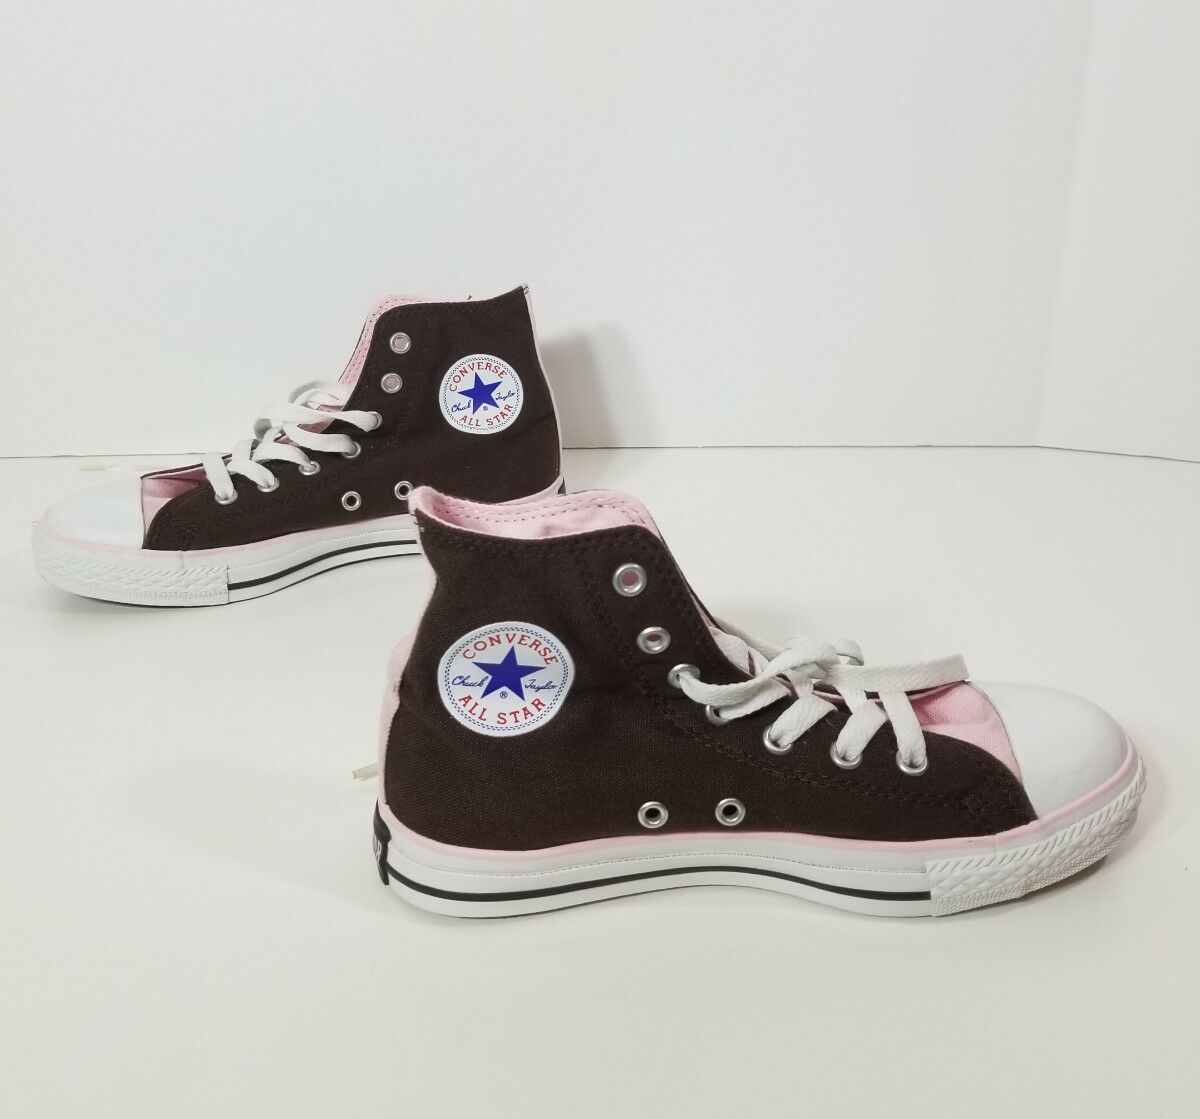 WOMENS Converse All Star Sneakers Pink Sz 3 Shoes Laces Brown Casual Sports